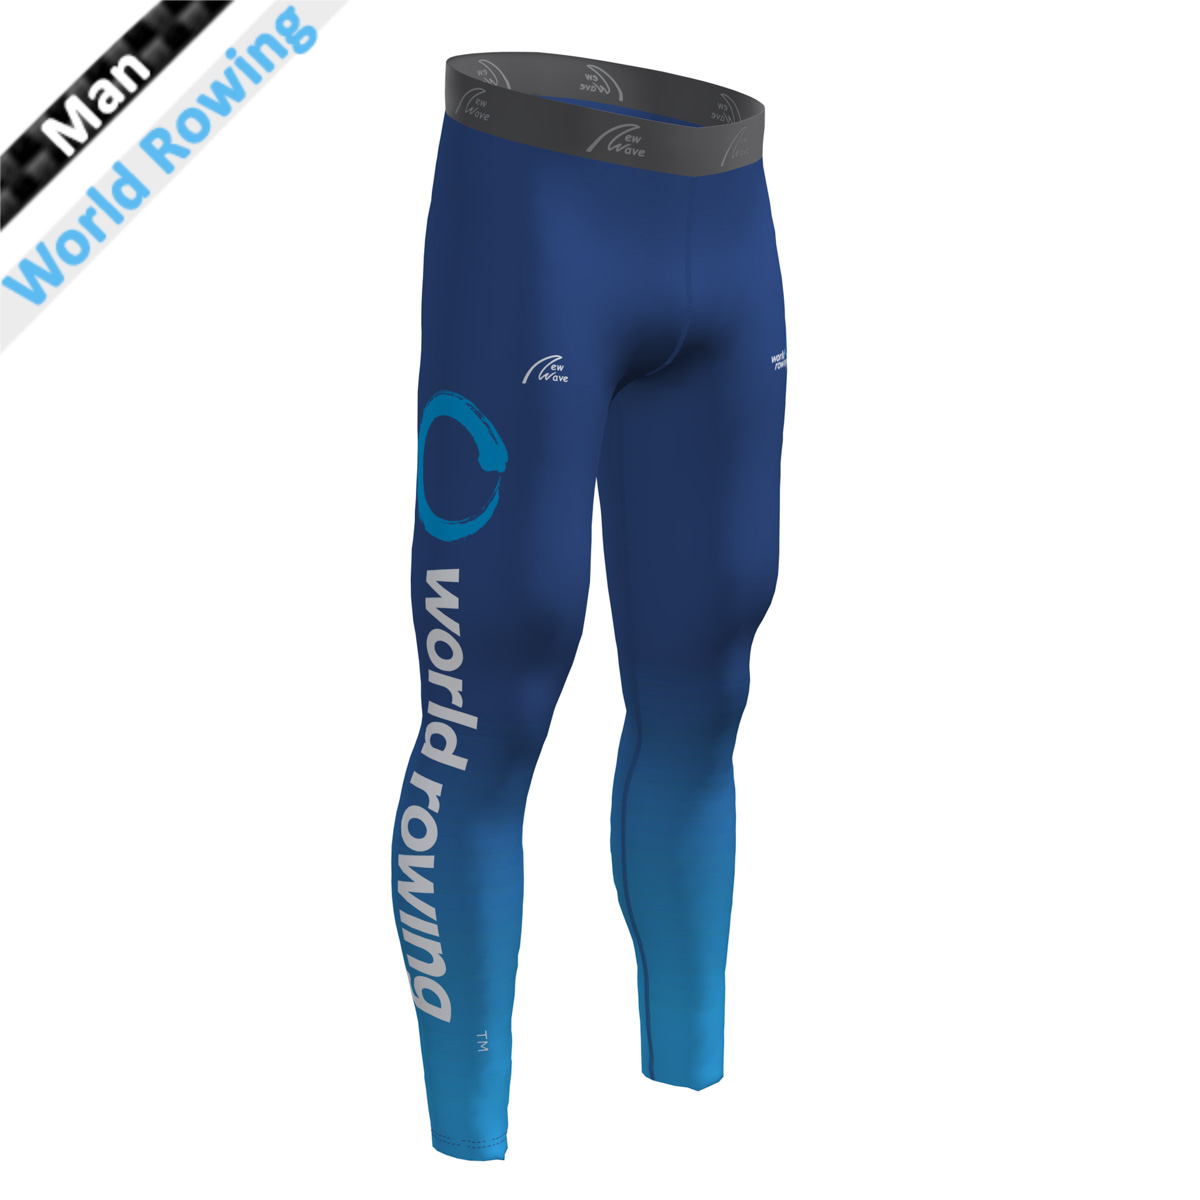 Flex Tights world rowing